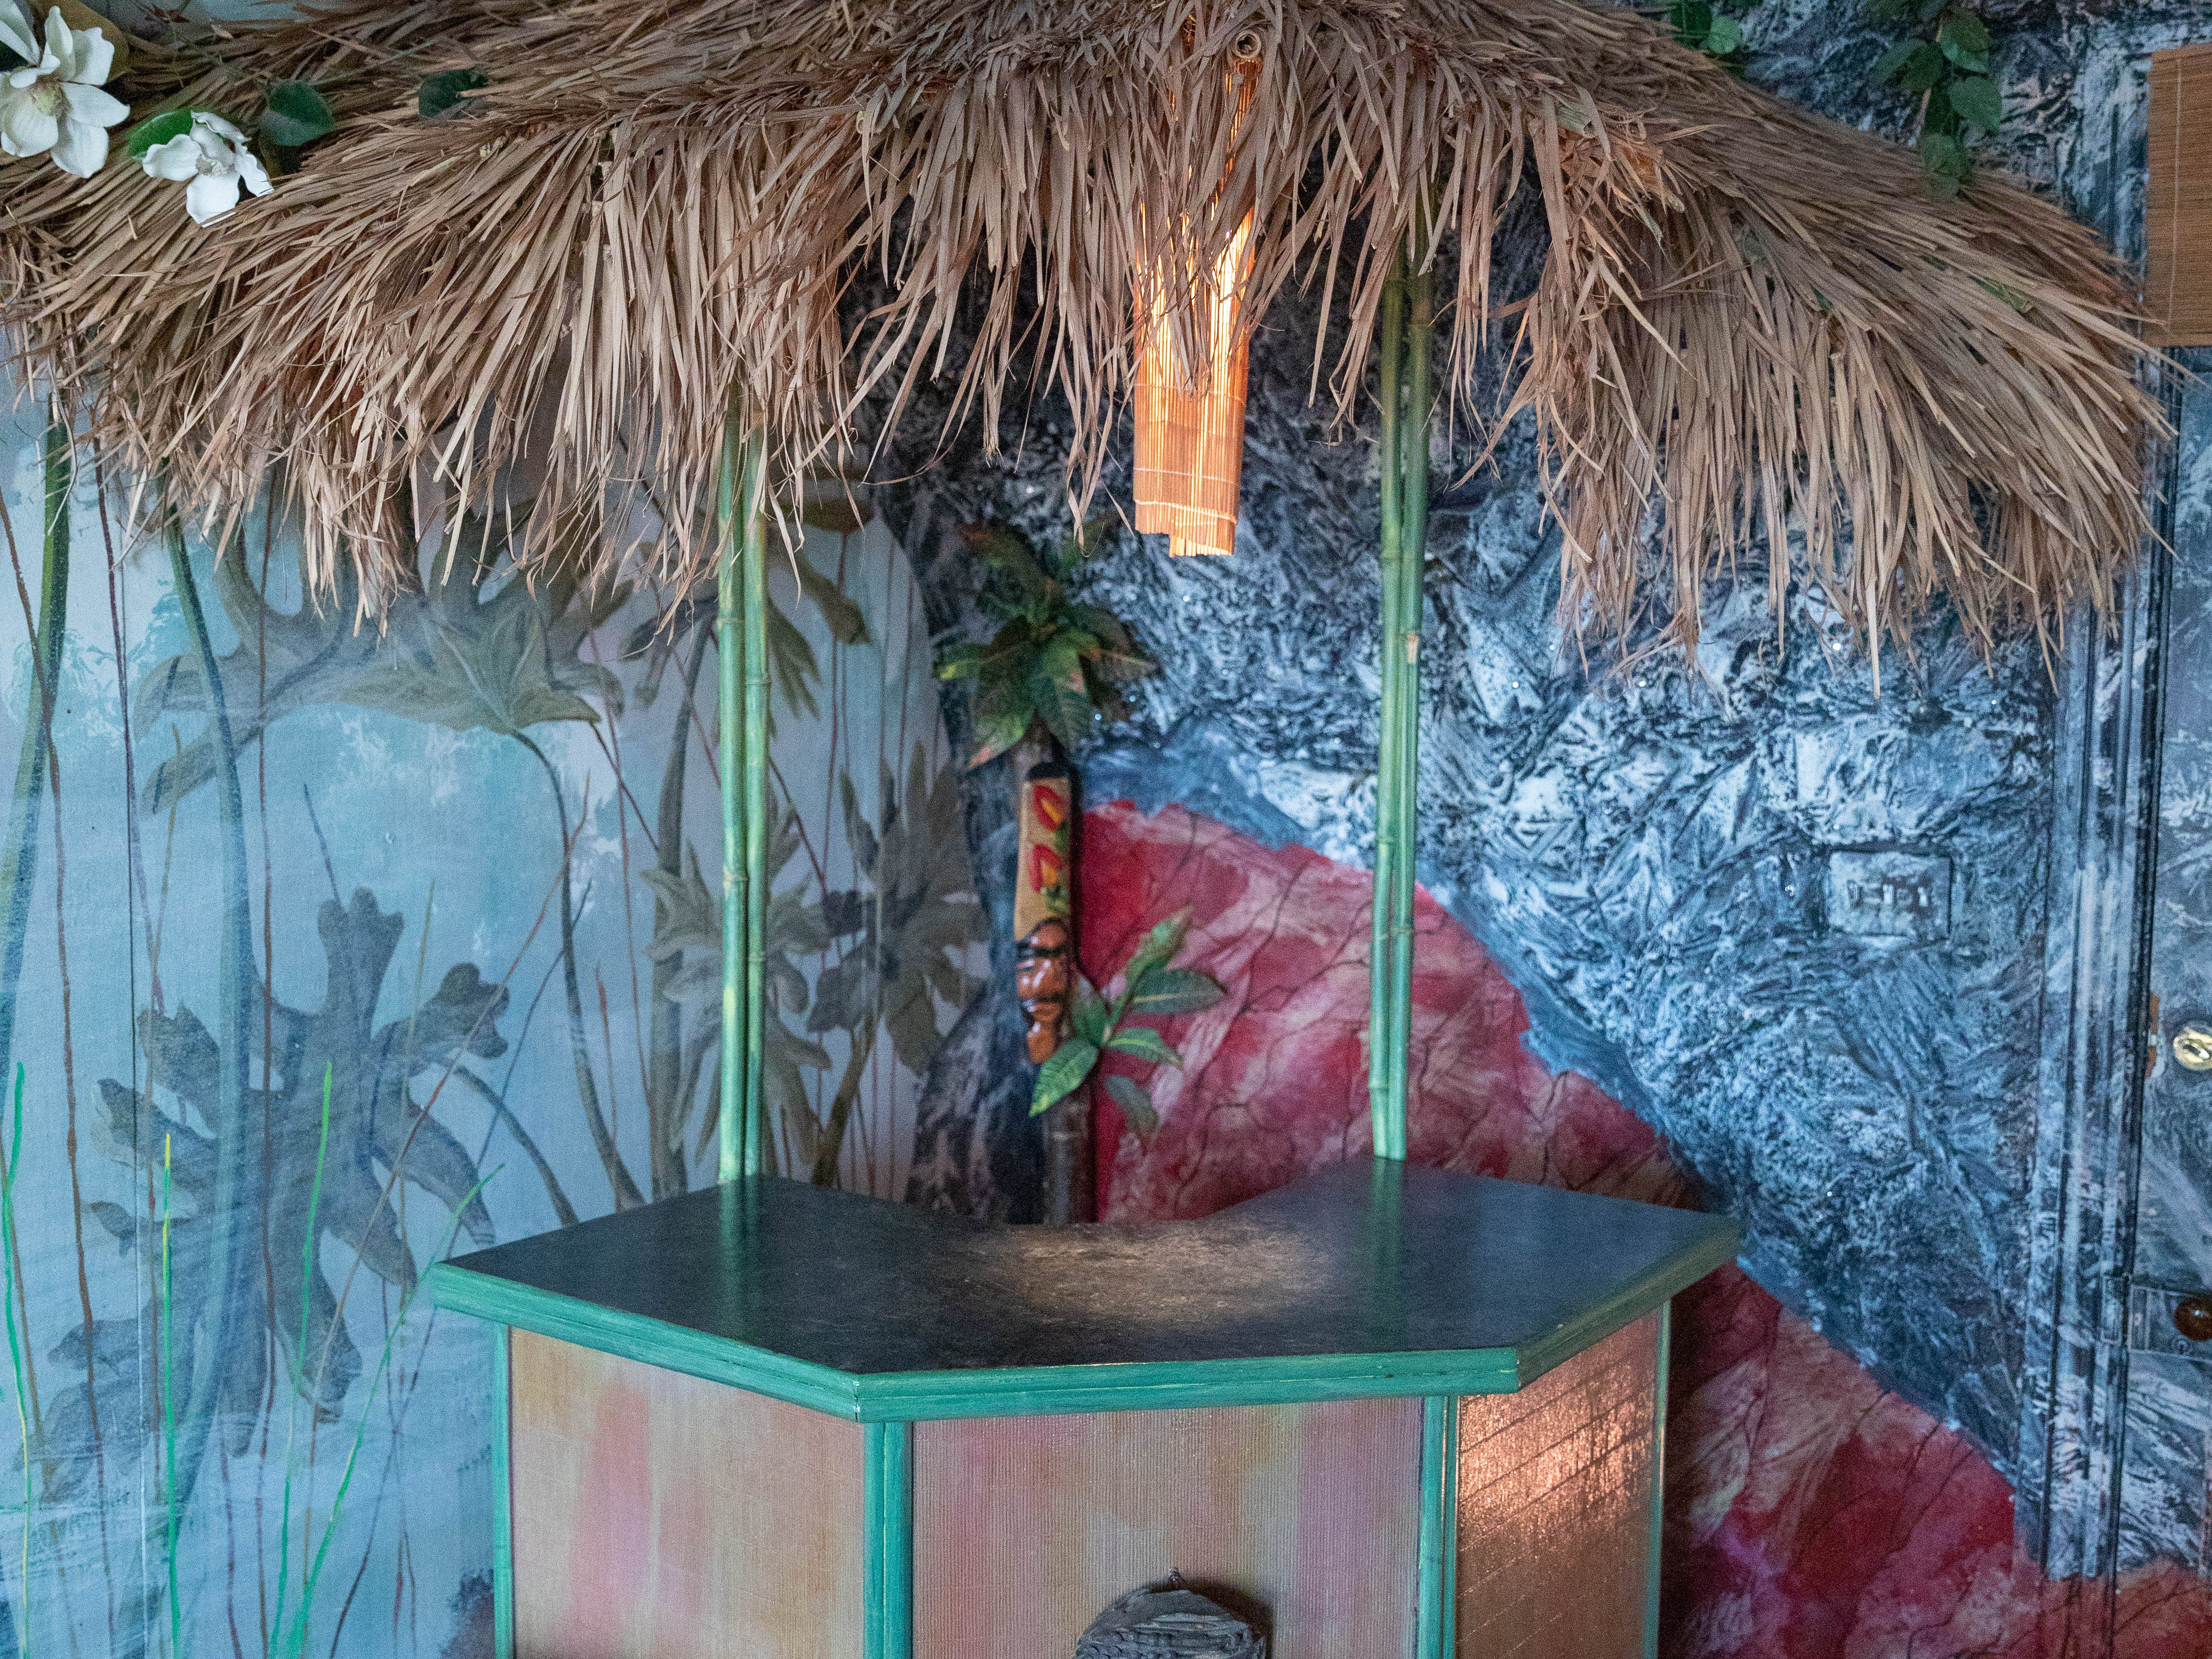 """The tiki bar inside the """"Jungle"""" room at Bube's Brewery in Mt. Joy."""